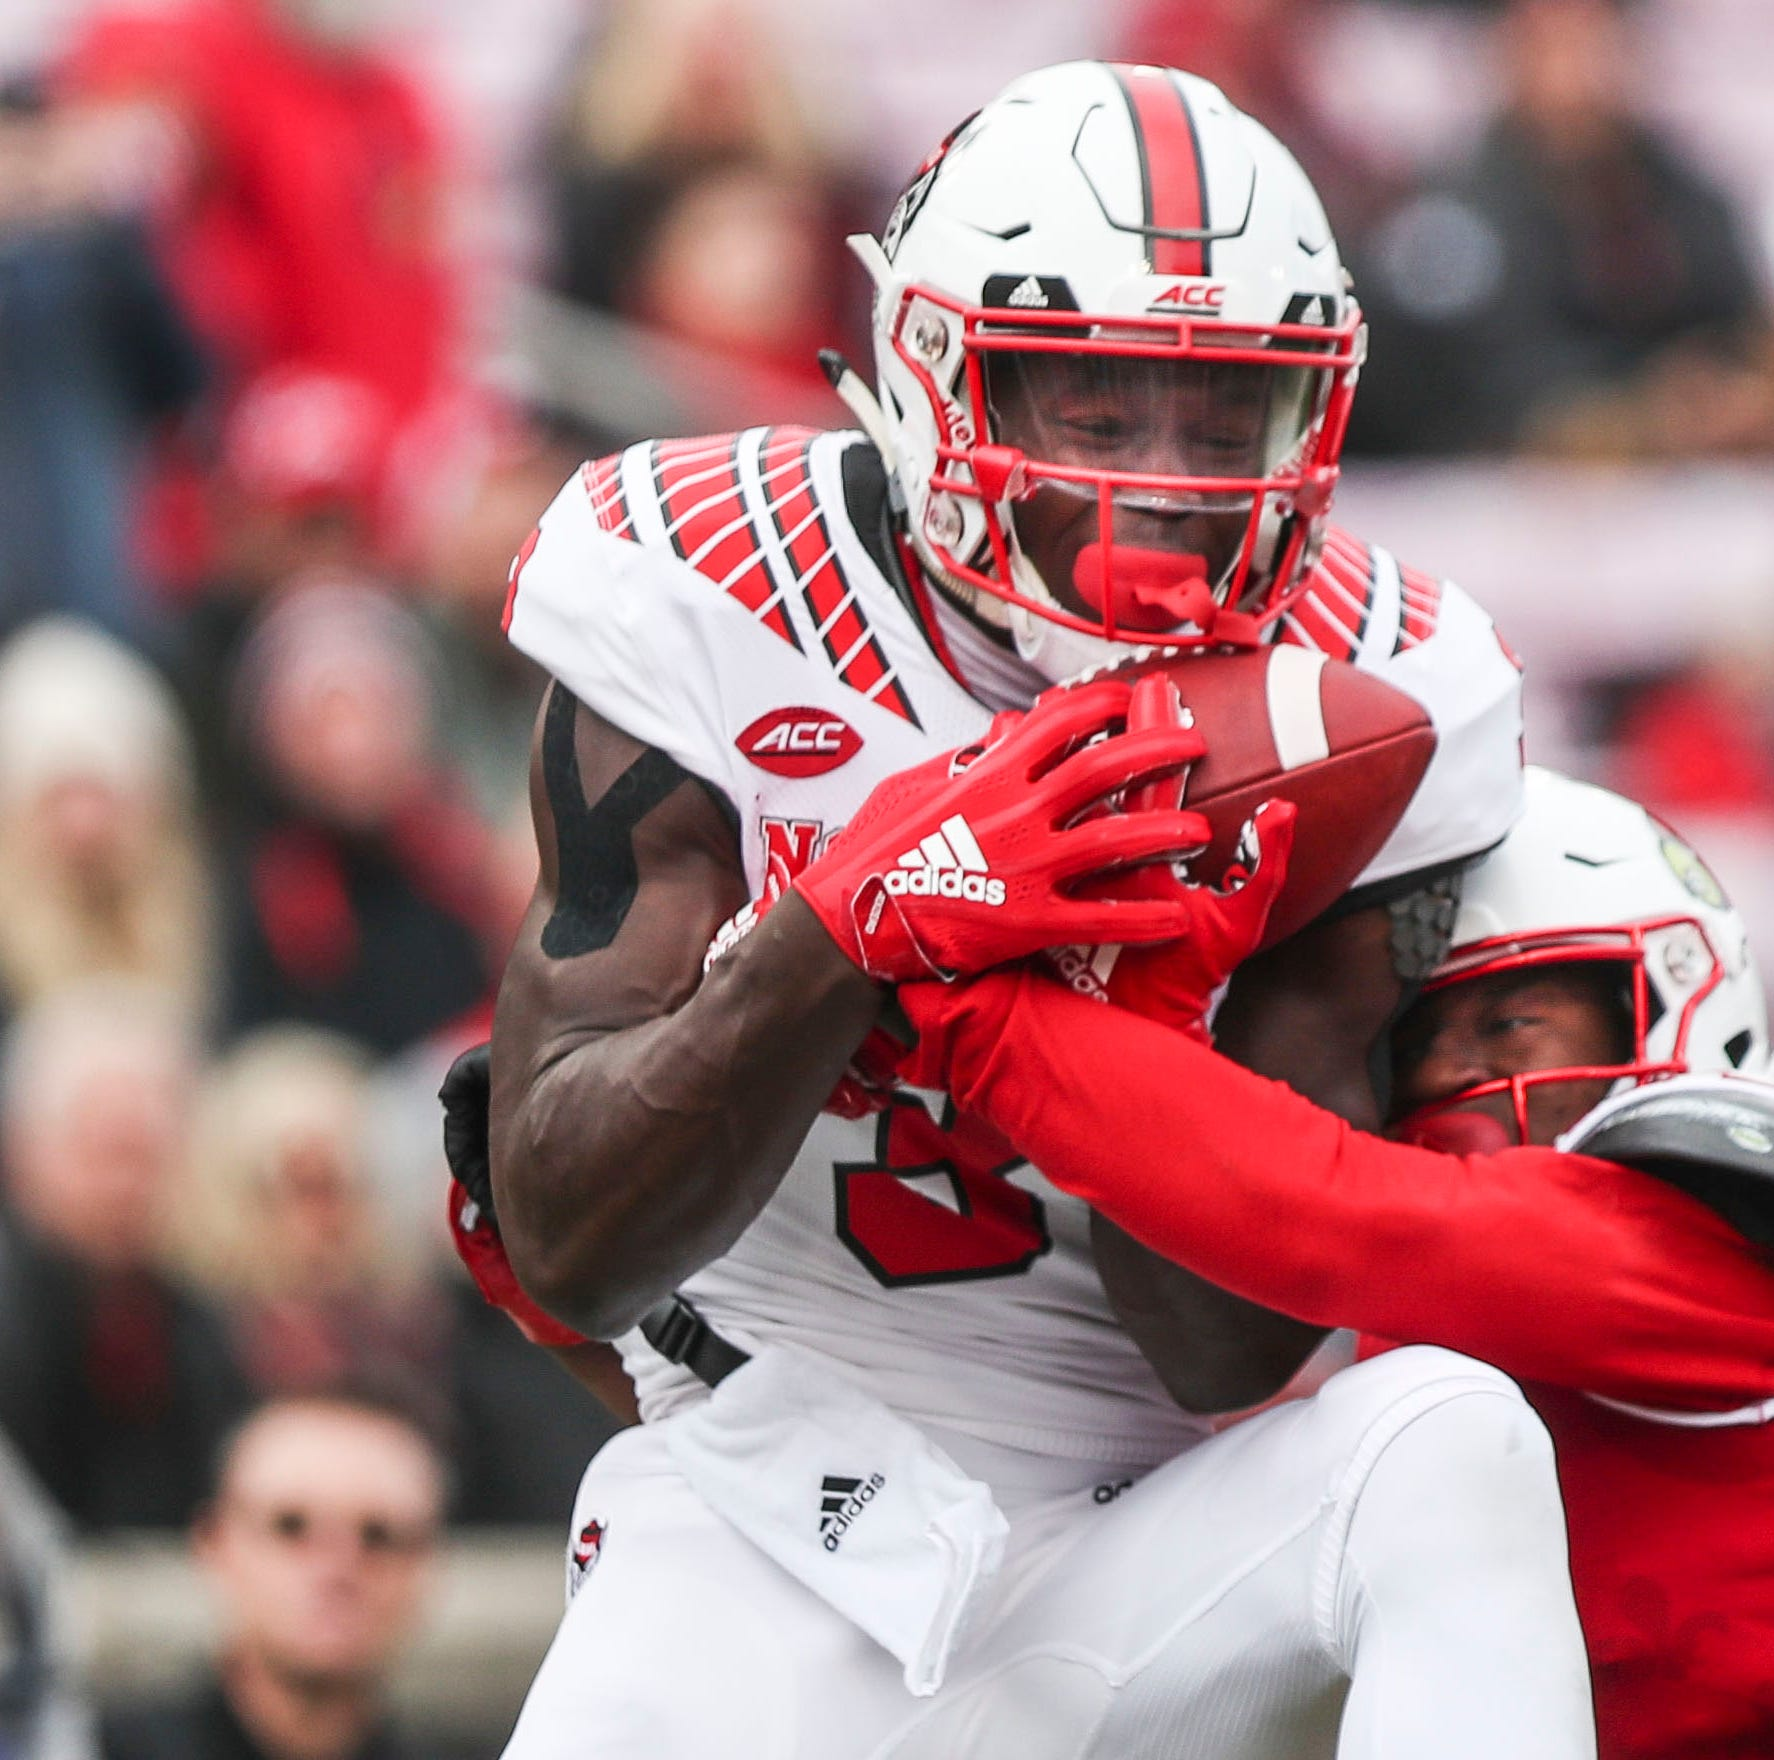 Louisville football vs. NC State: Live updates and scores